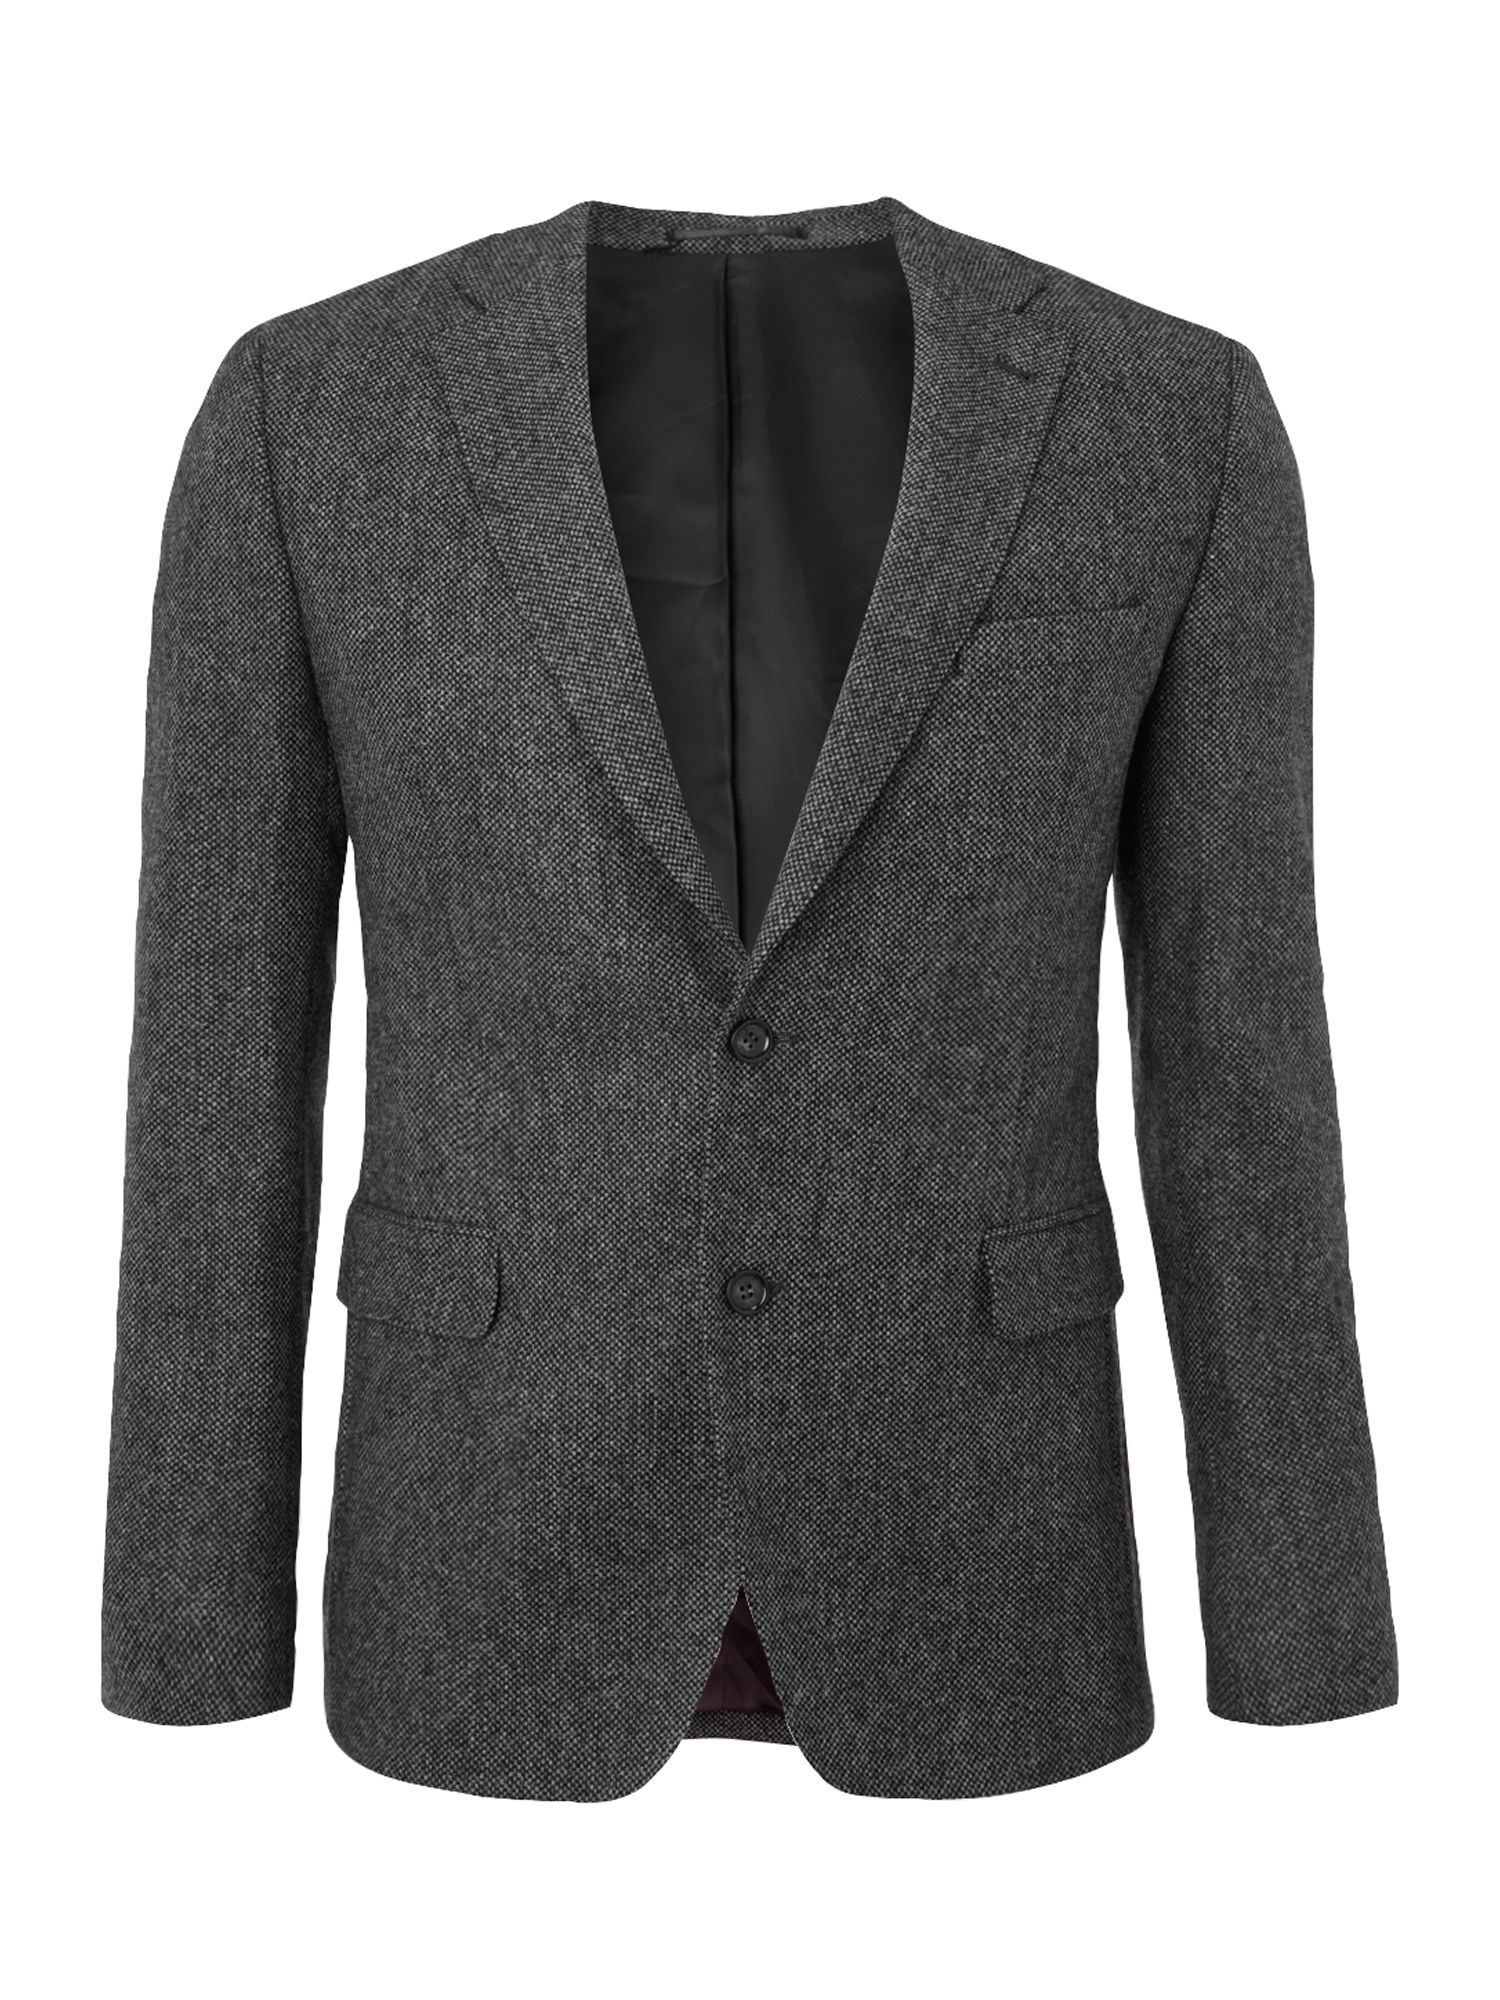 Gant Tweed Jacket In Gray For Men Grey Lyst